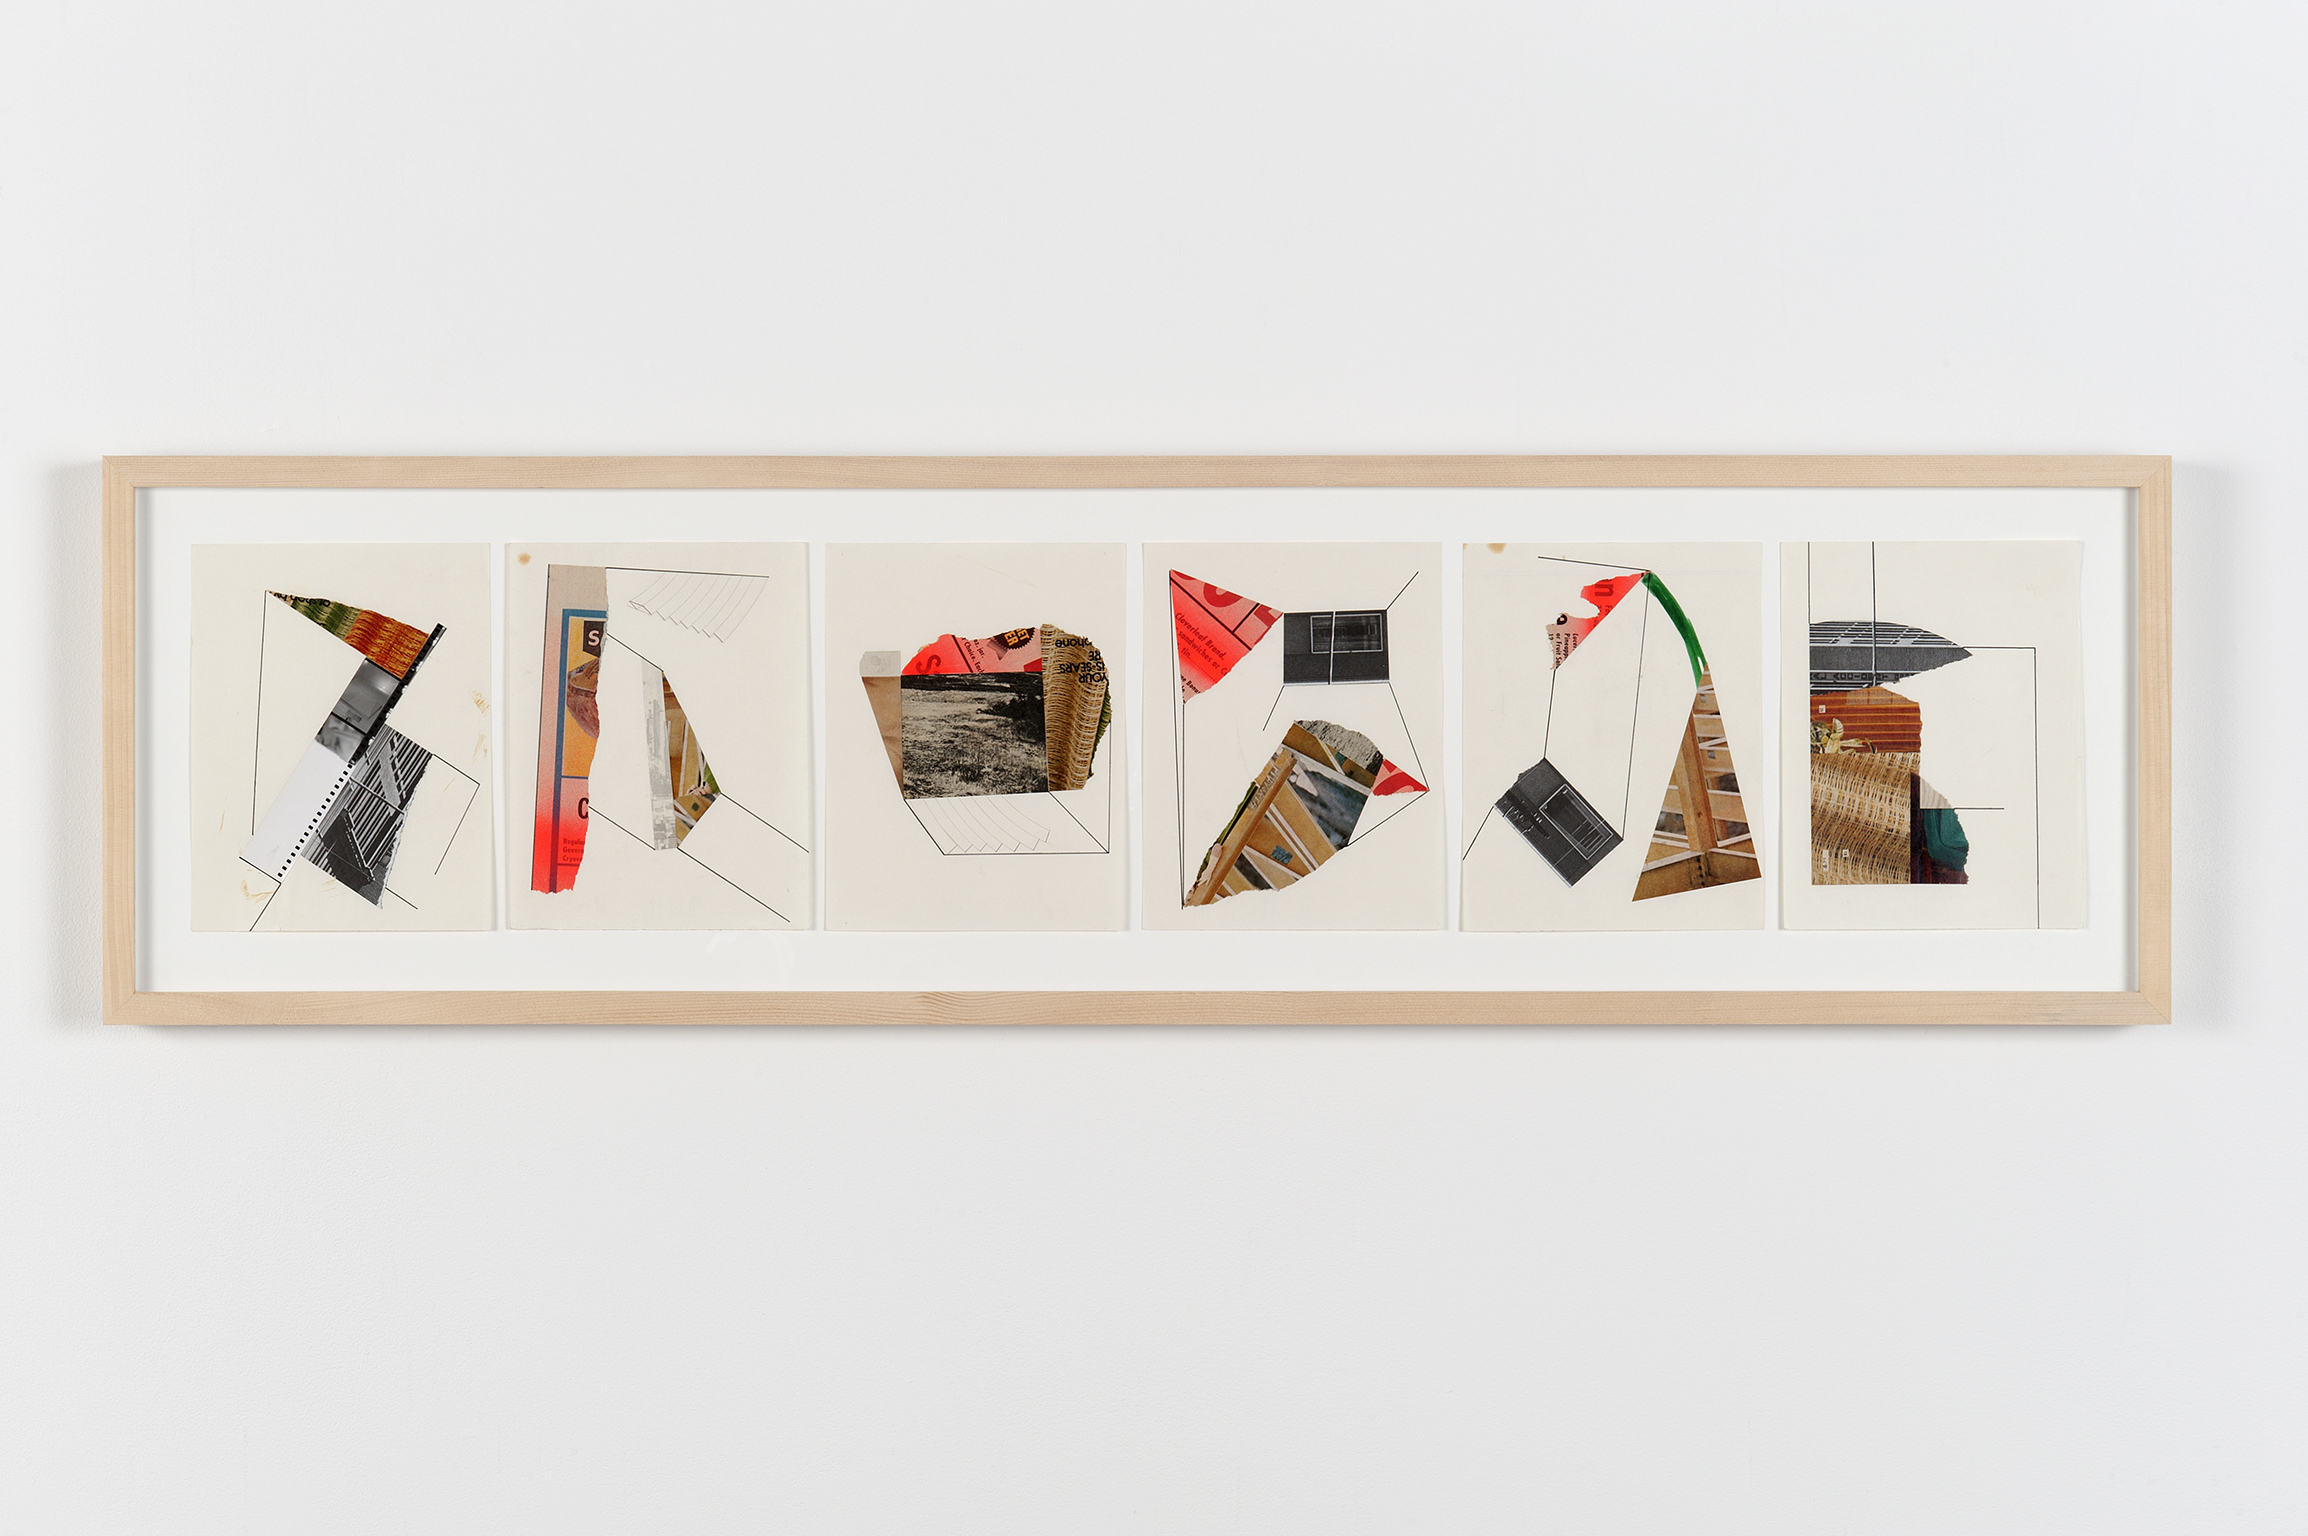 Robert Kleyn, Untitled Collages, 1972, paper, photographs, magazine cut-outs, ink, pencil, spray paint, 13 x 48 in. (33 x 122 cm)   by